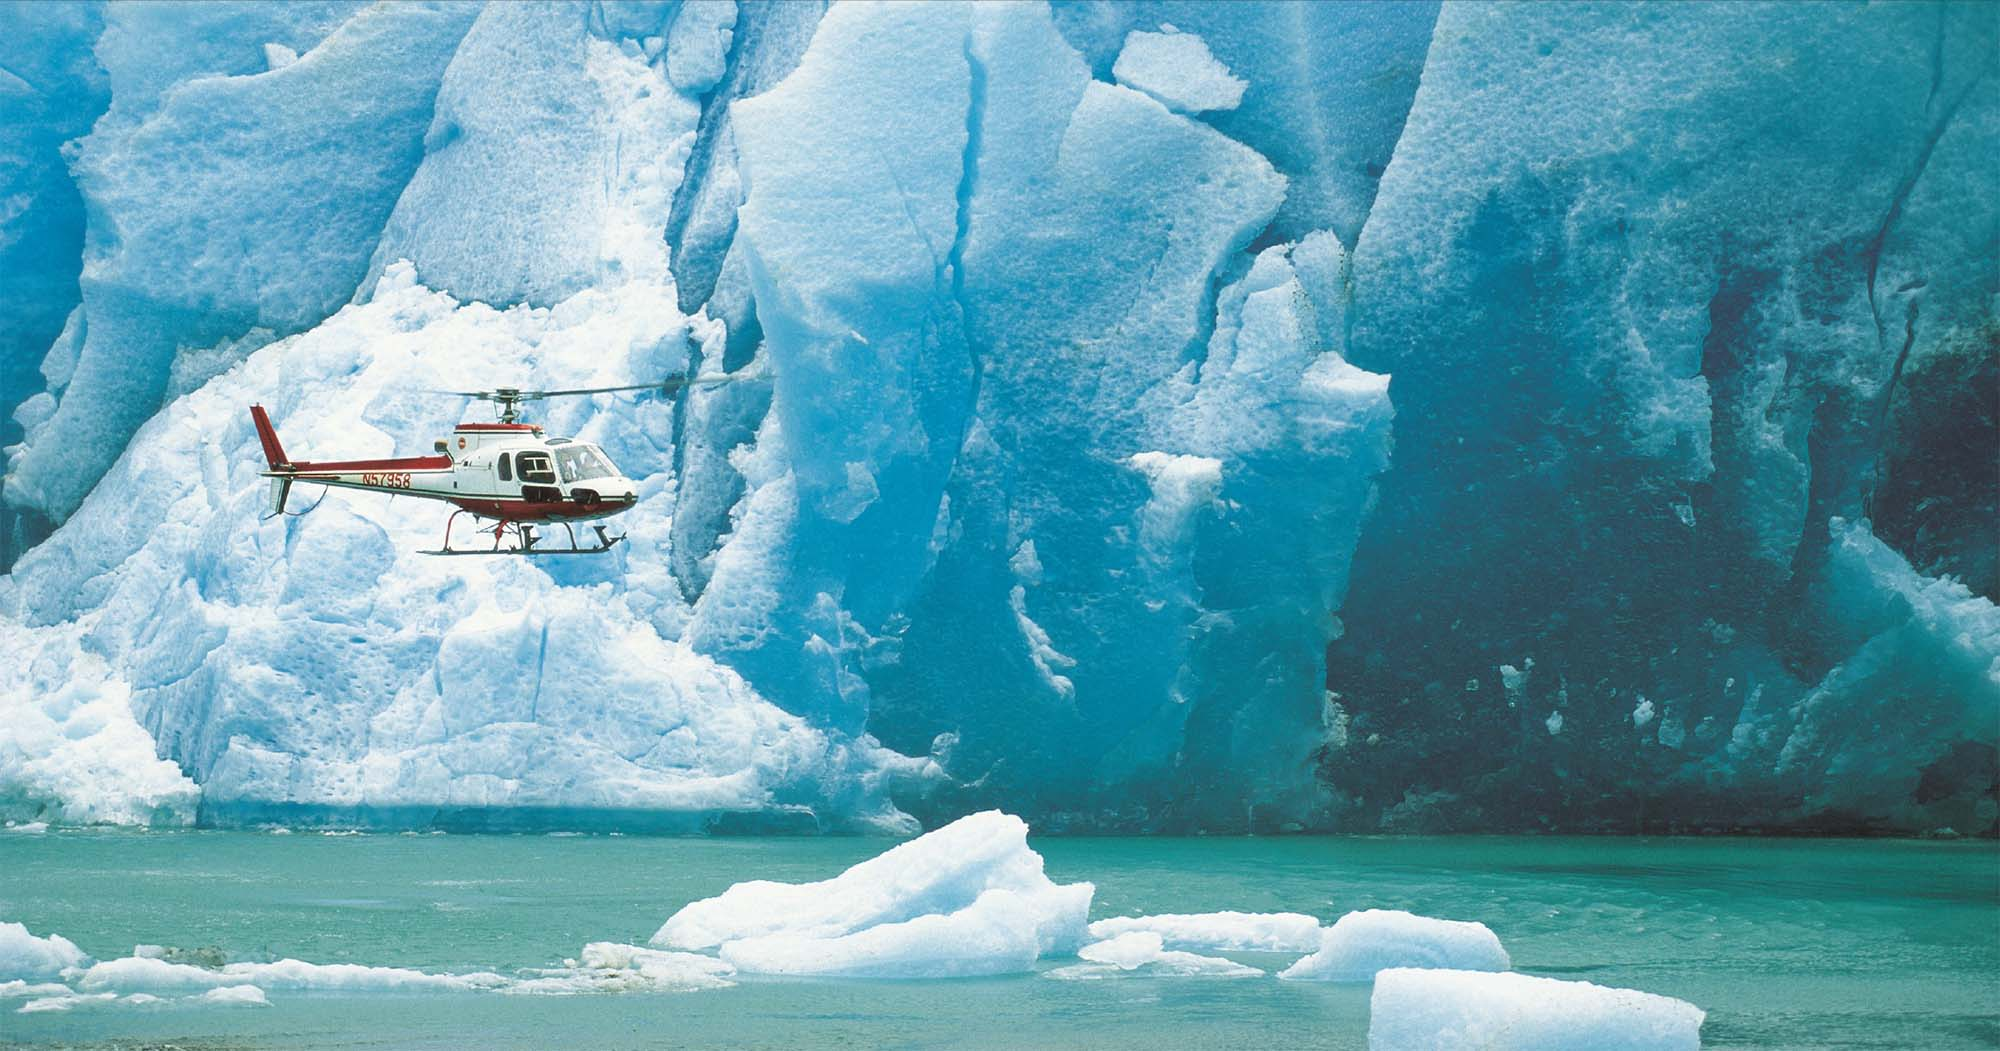 Helicopter and Glaciers